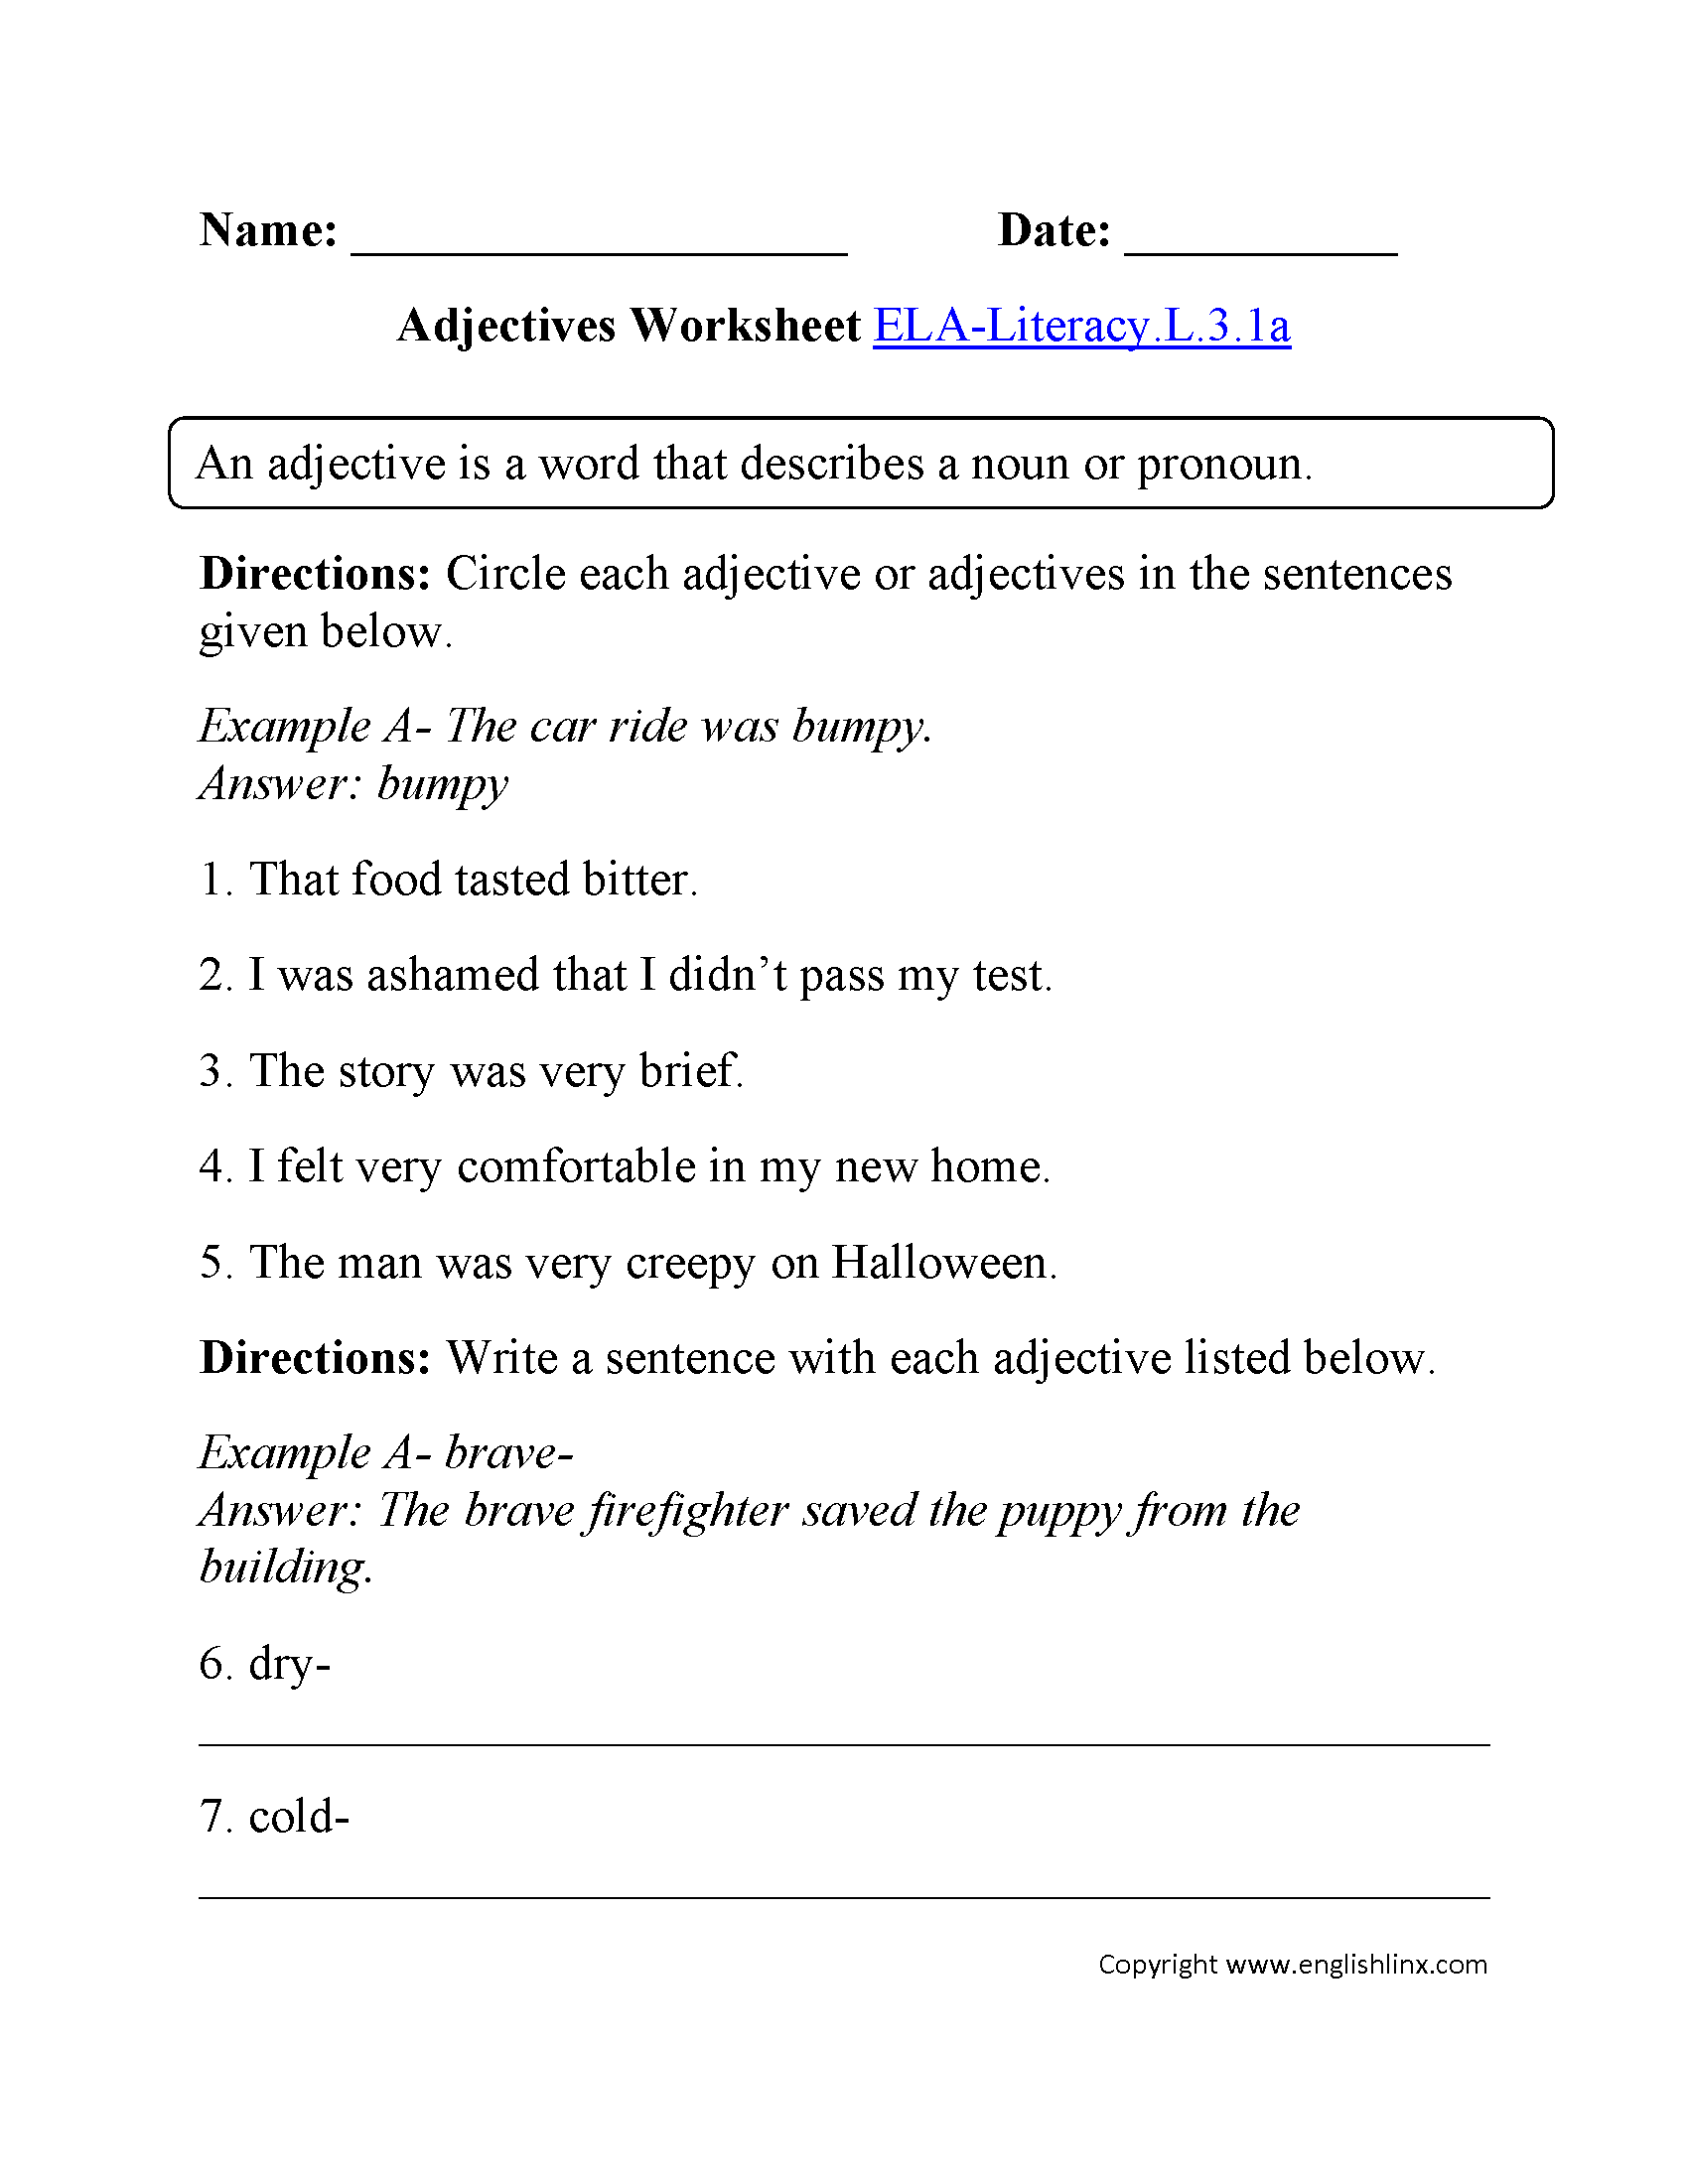 Worksheet Adjectives Worksheet Grade 2 3rd grade common core language worksheets adjectives worksheet 2 ela literacy l 3 1a worksheet